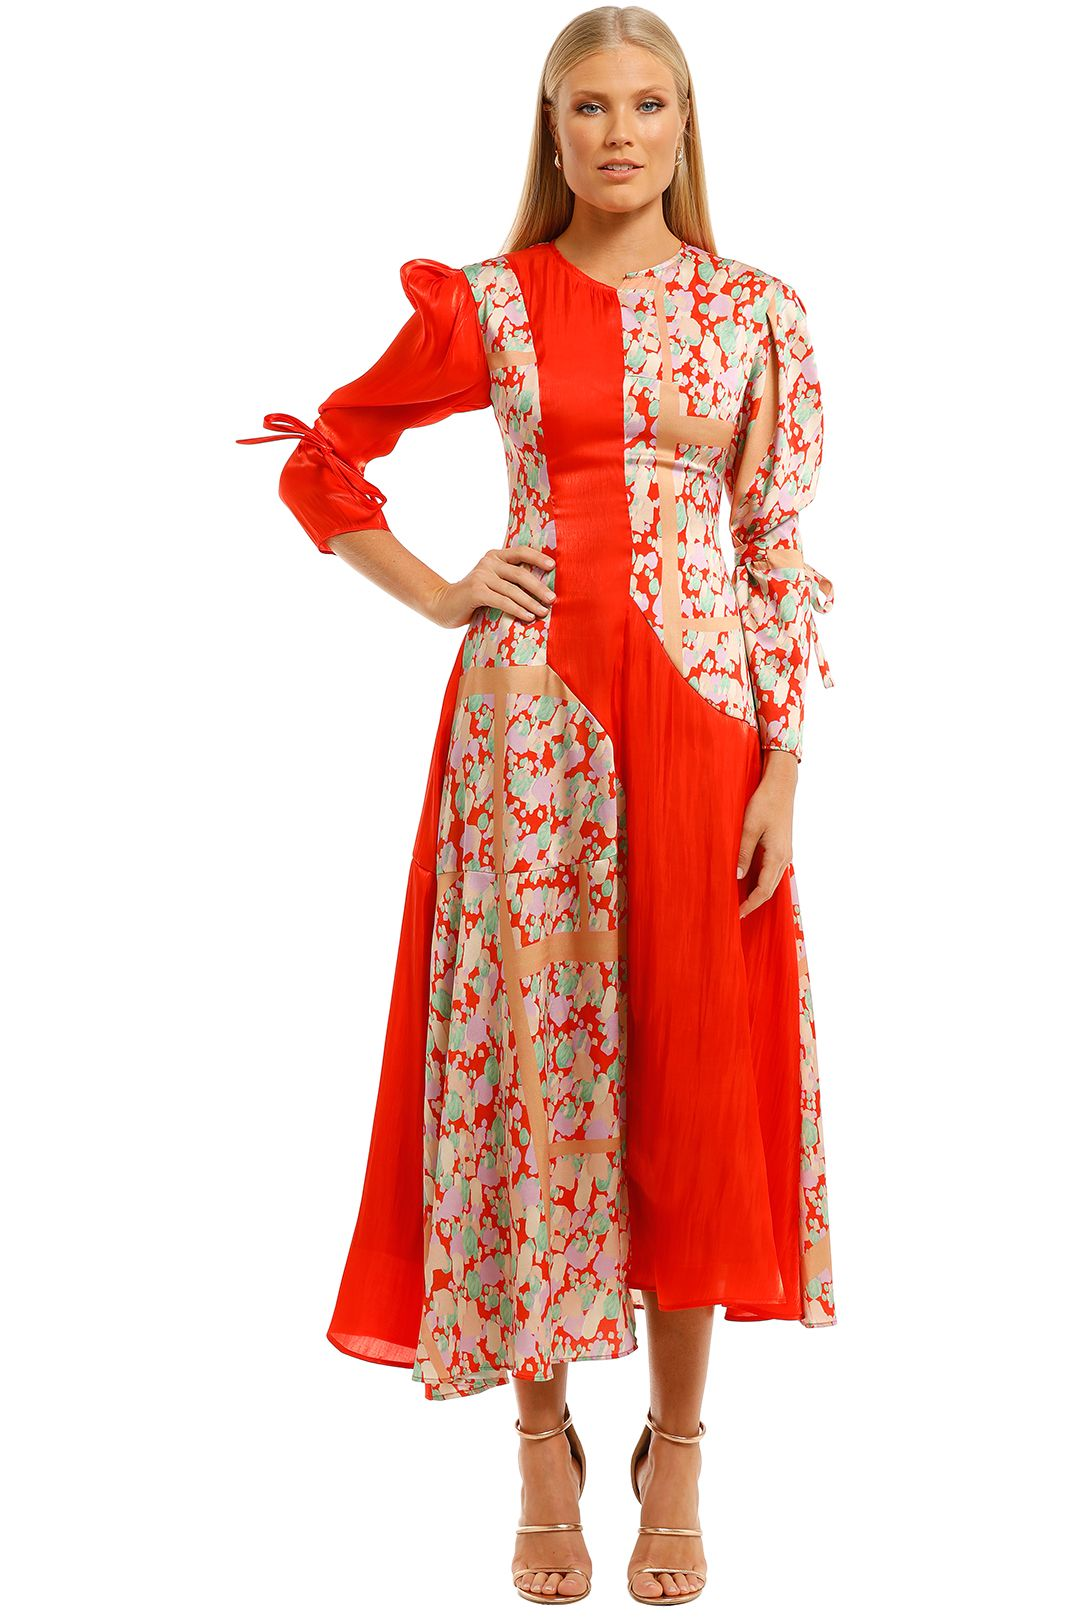 Rejina-Pyo-Tanika-Dress-Silk-Twill-Print-Mix-Front